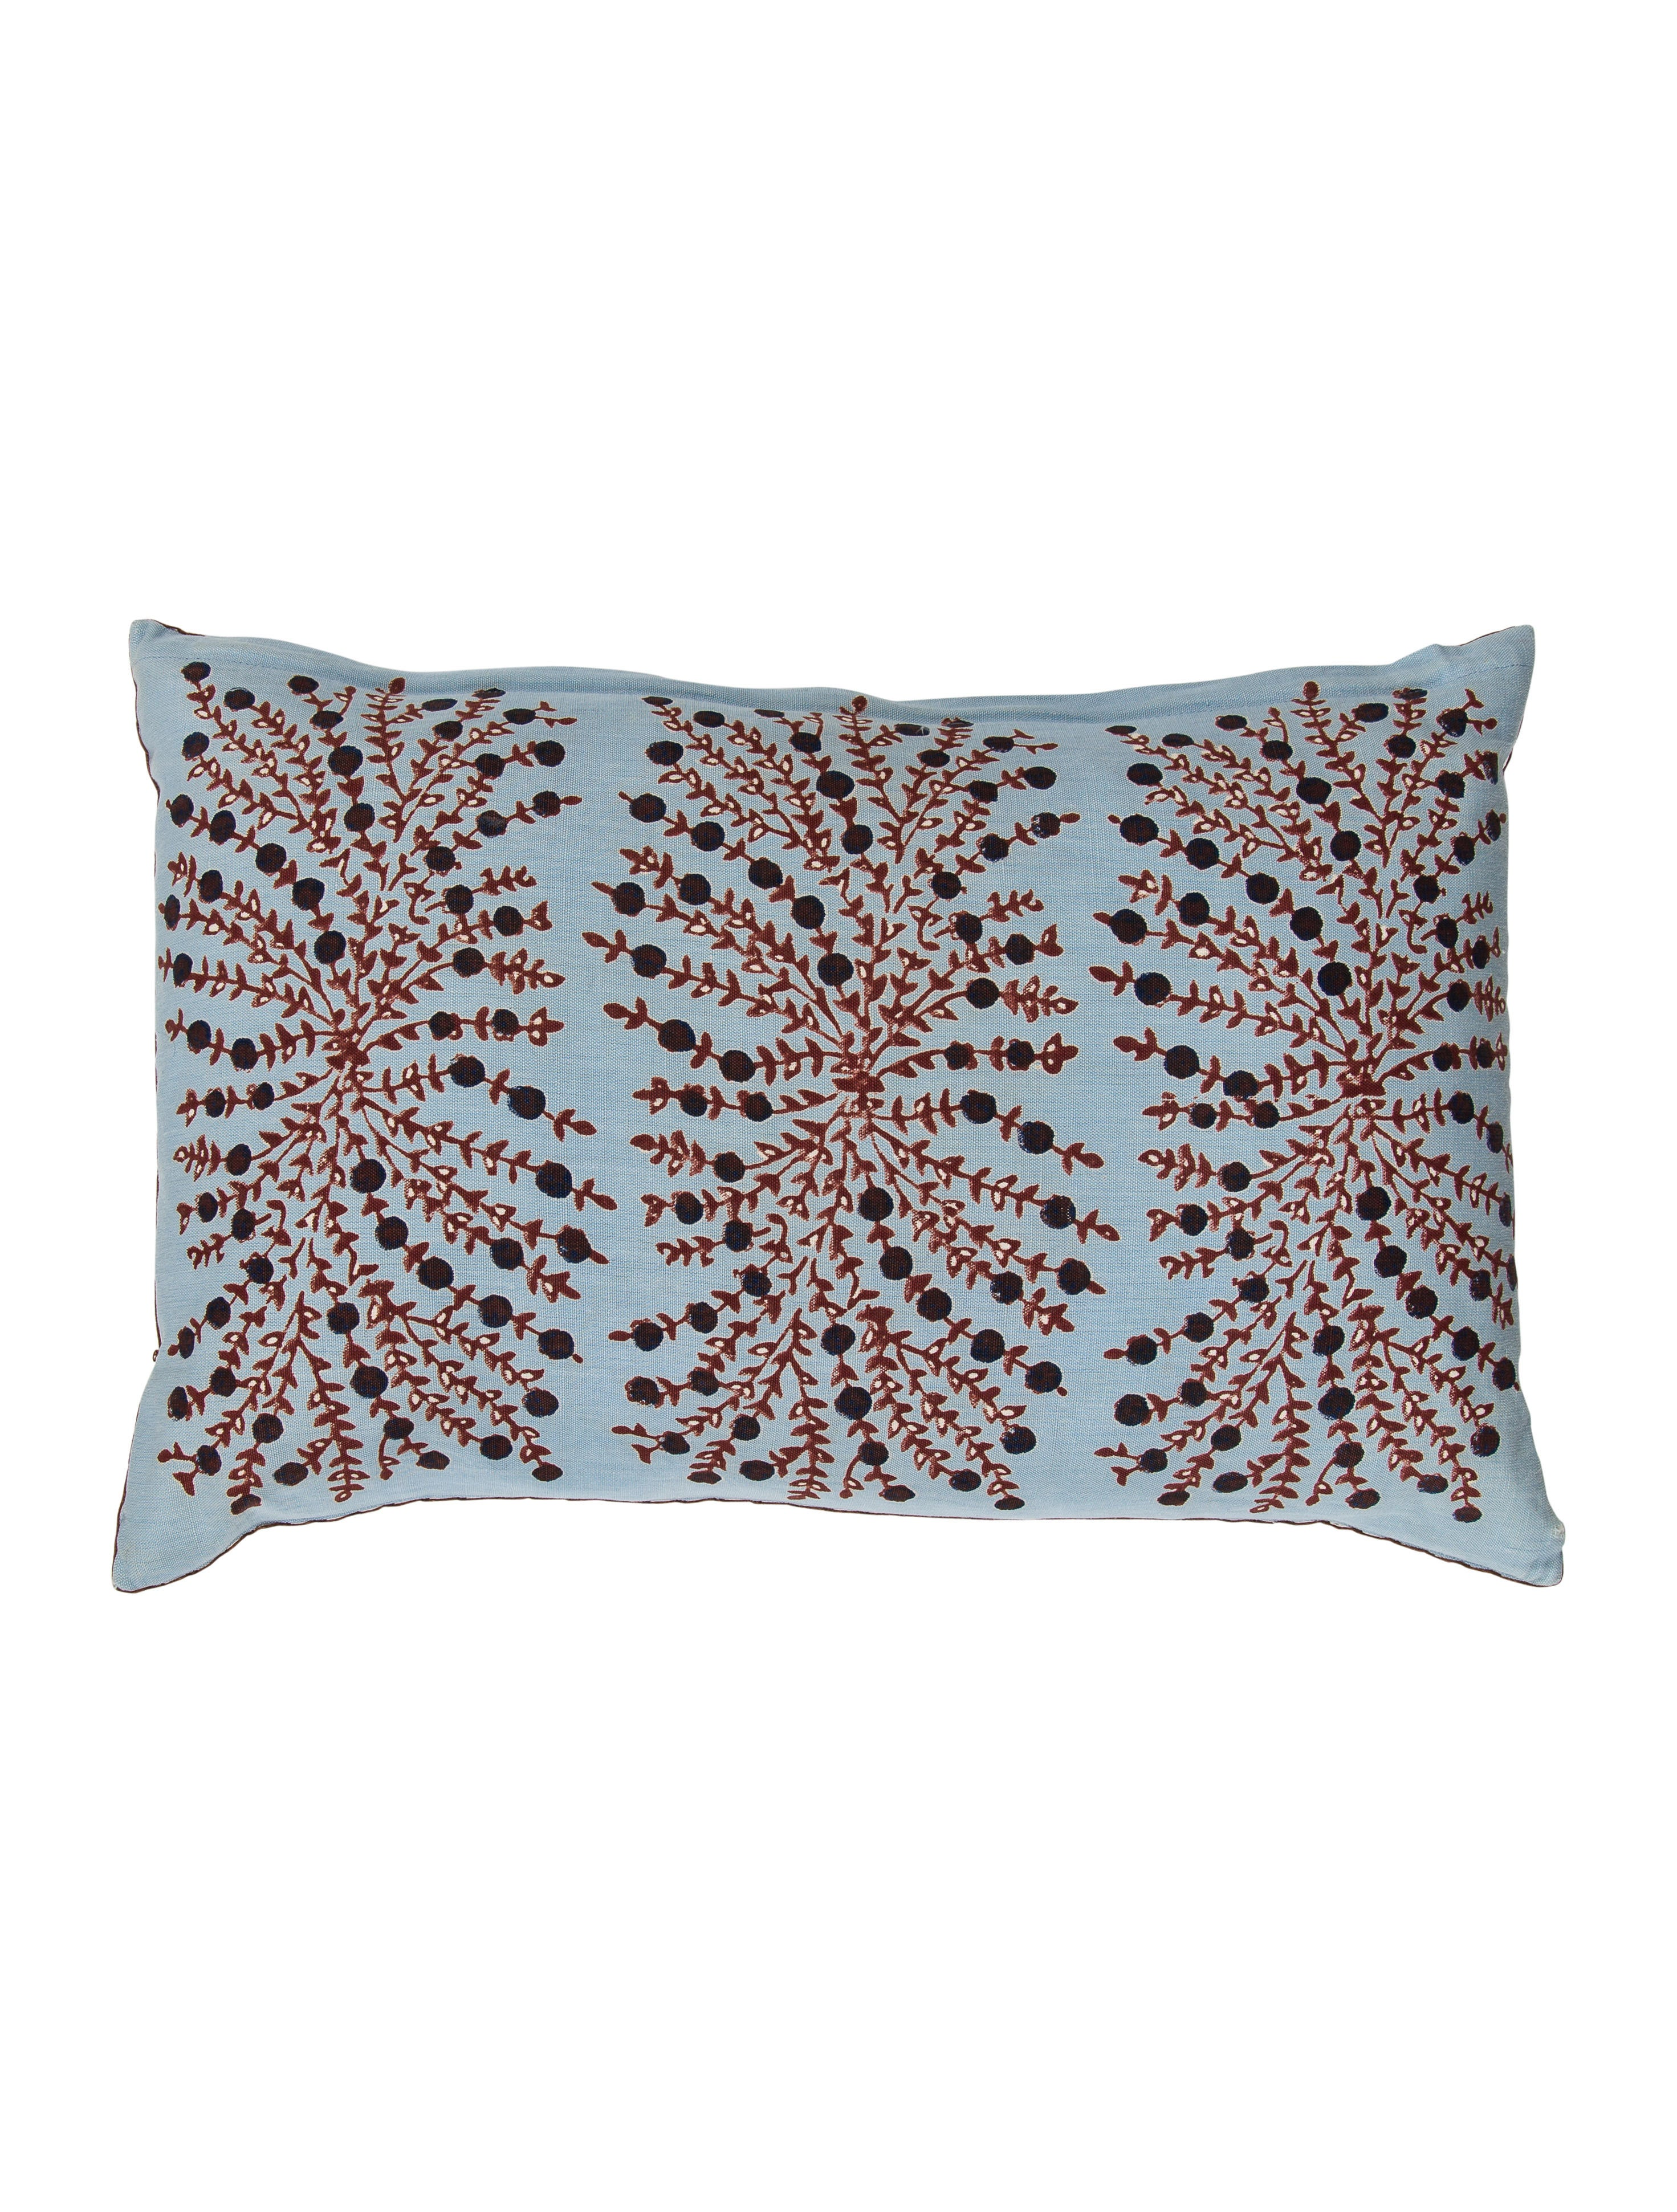 John robshaw decorative throw pillow bedding and bath jrobs20076 the realreal - Bedroom throw pillows ...